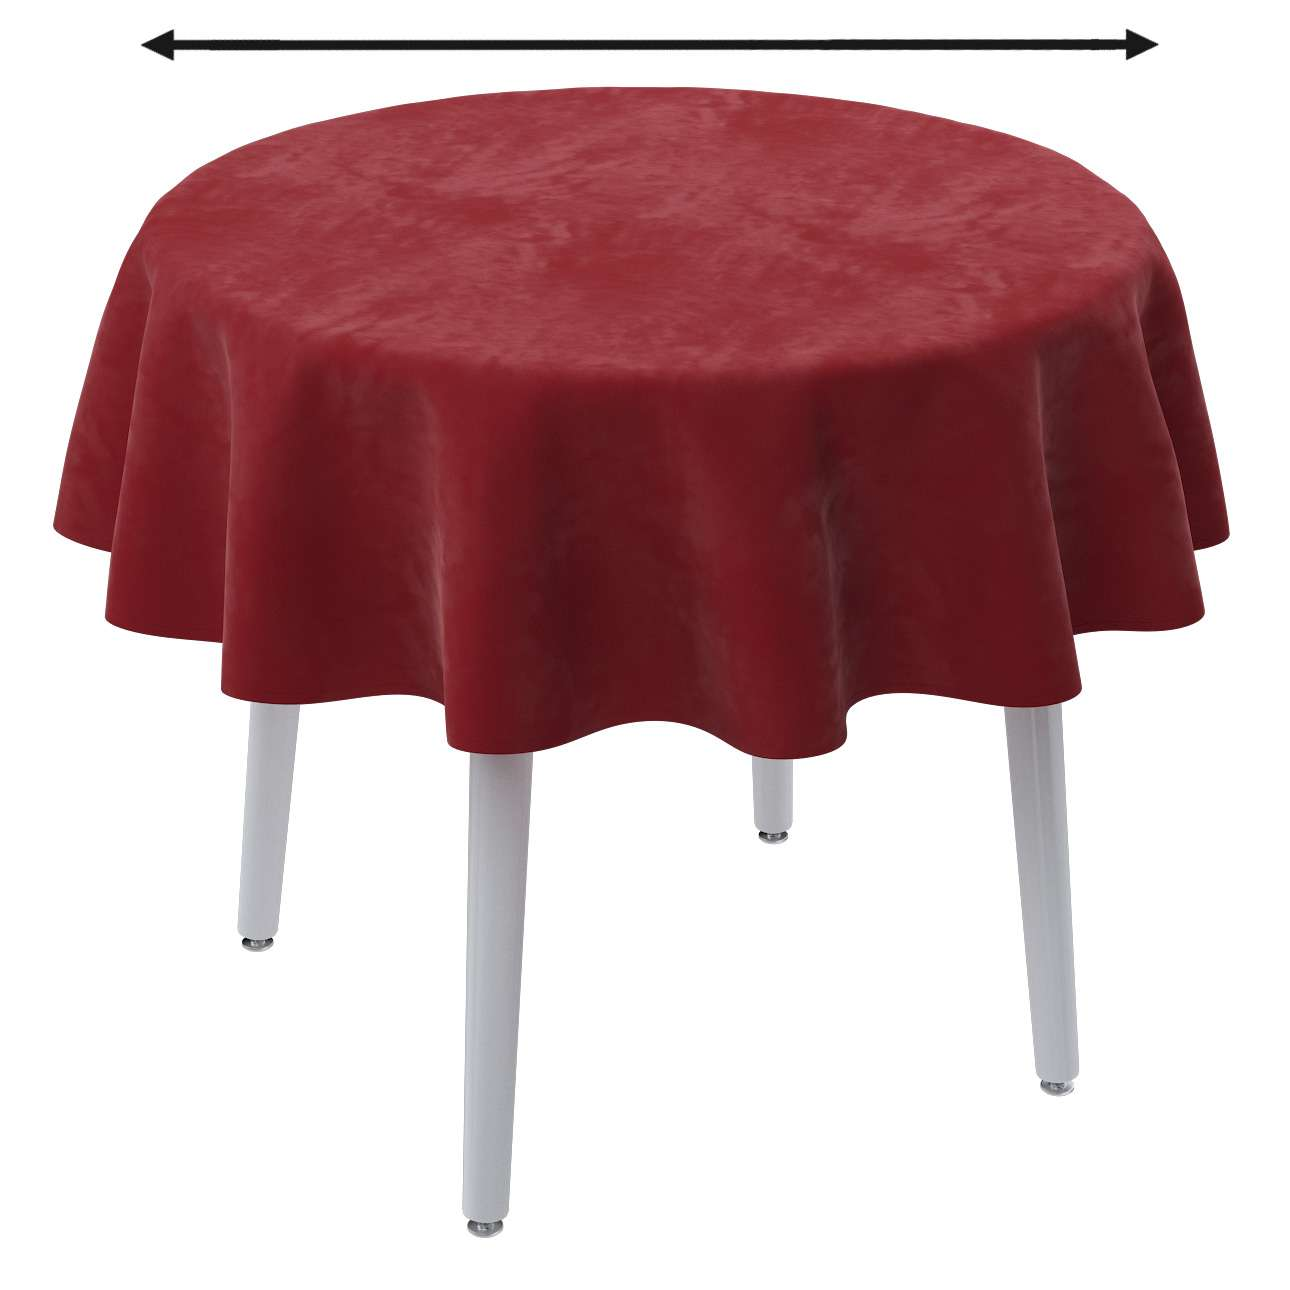 Round tablecloth in collection Velvet, fabric: 704-15